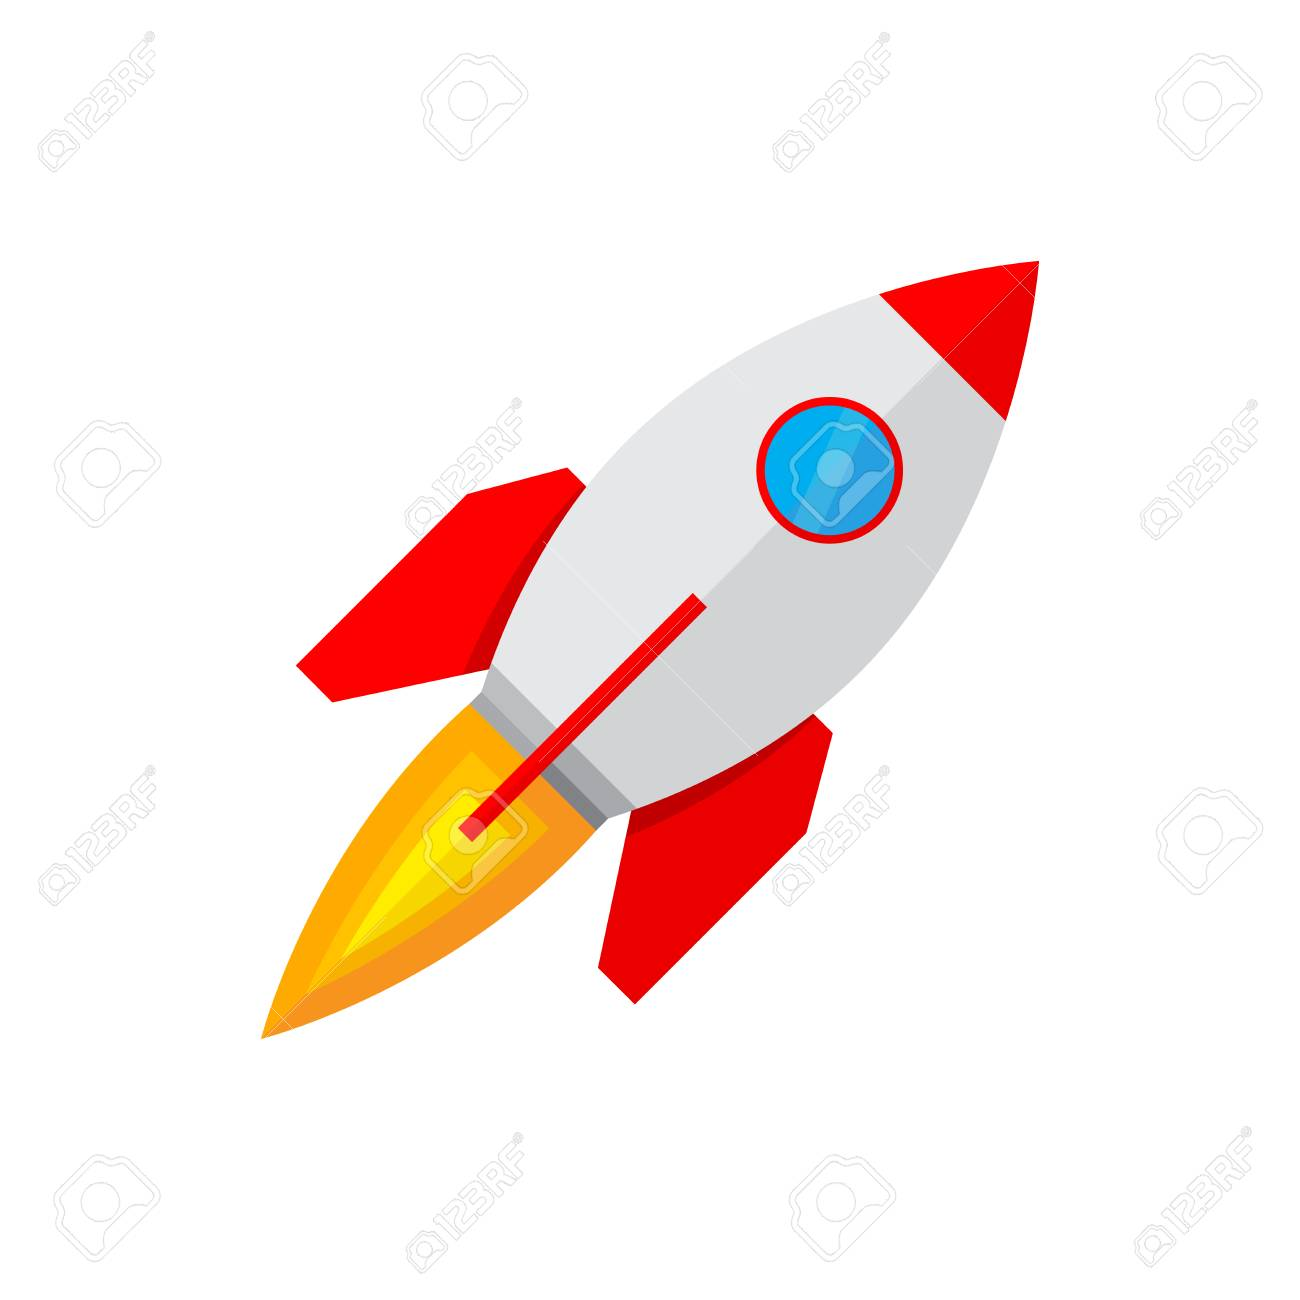 Spaceship clipart simple. Free download clip art